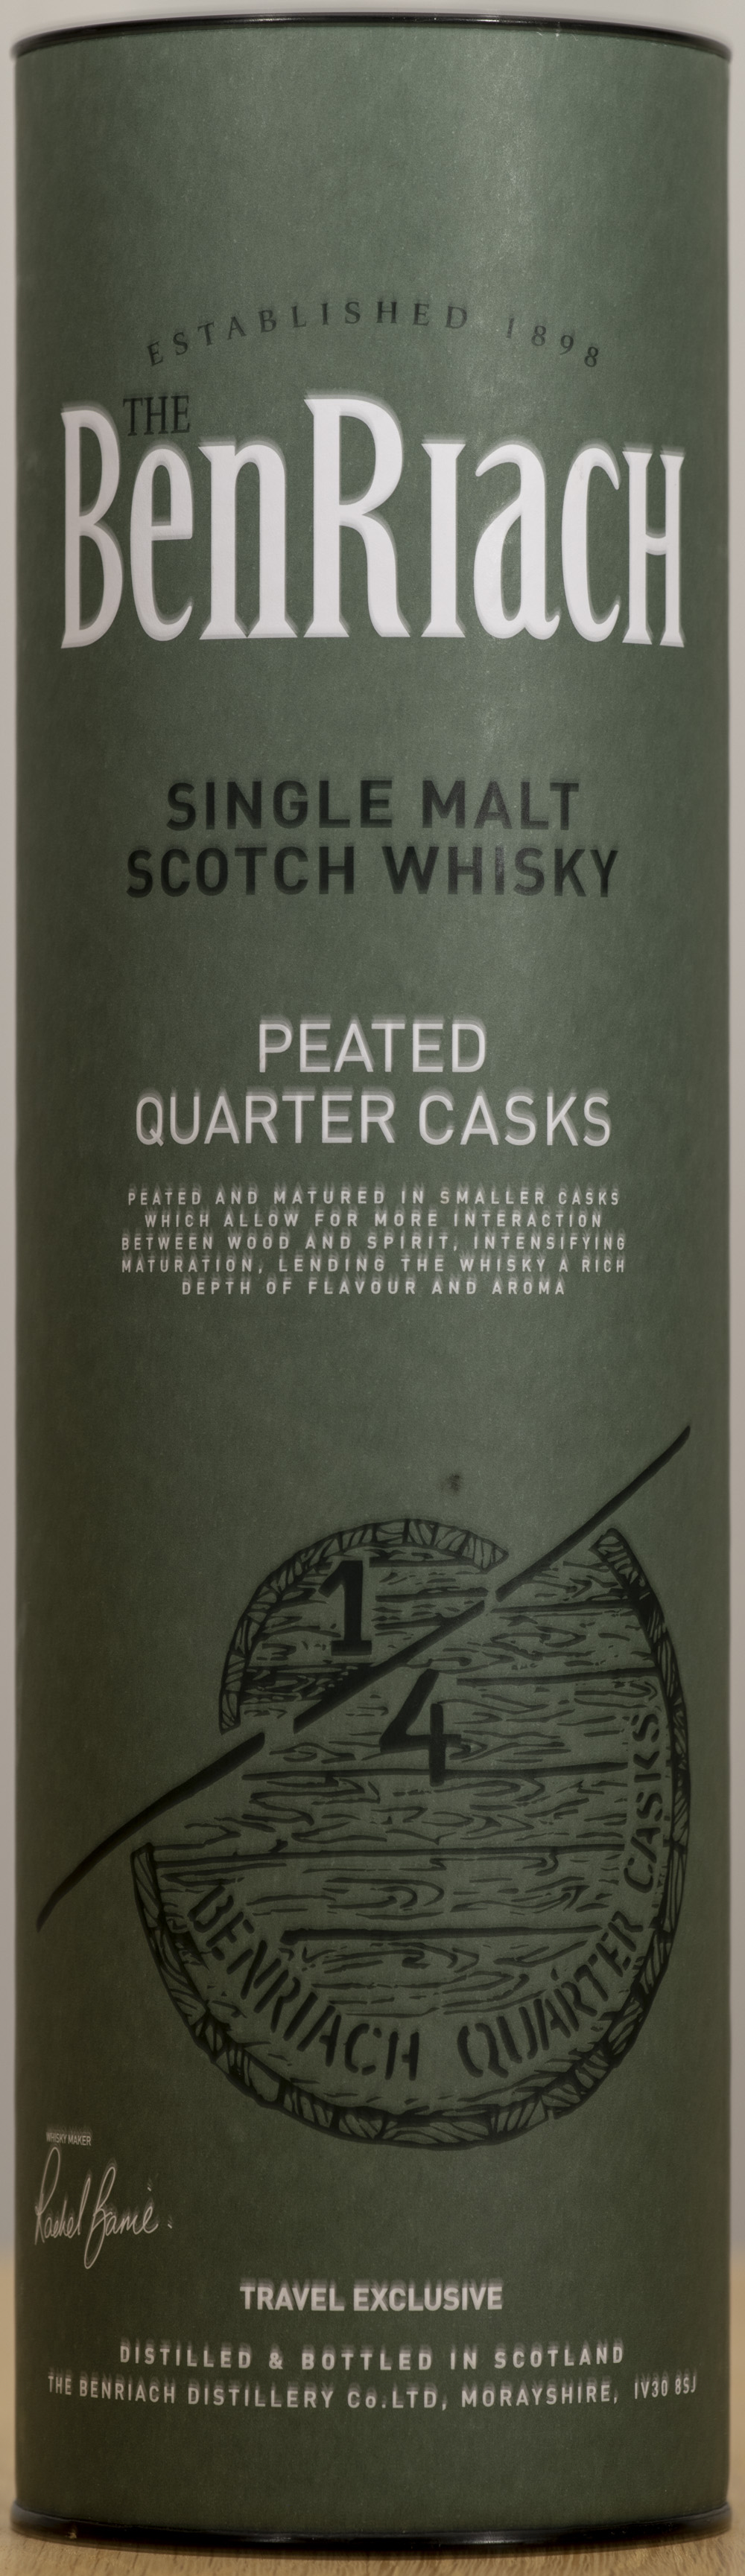 Billede: PHC_1576 - Benriach Peated Quarter Cask - tube front.jpg